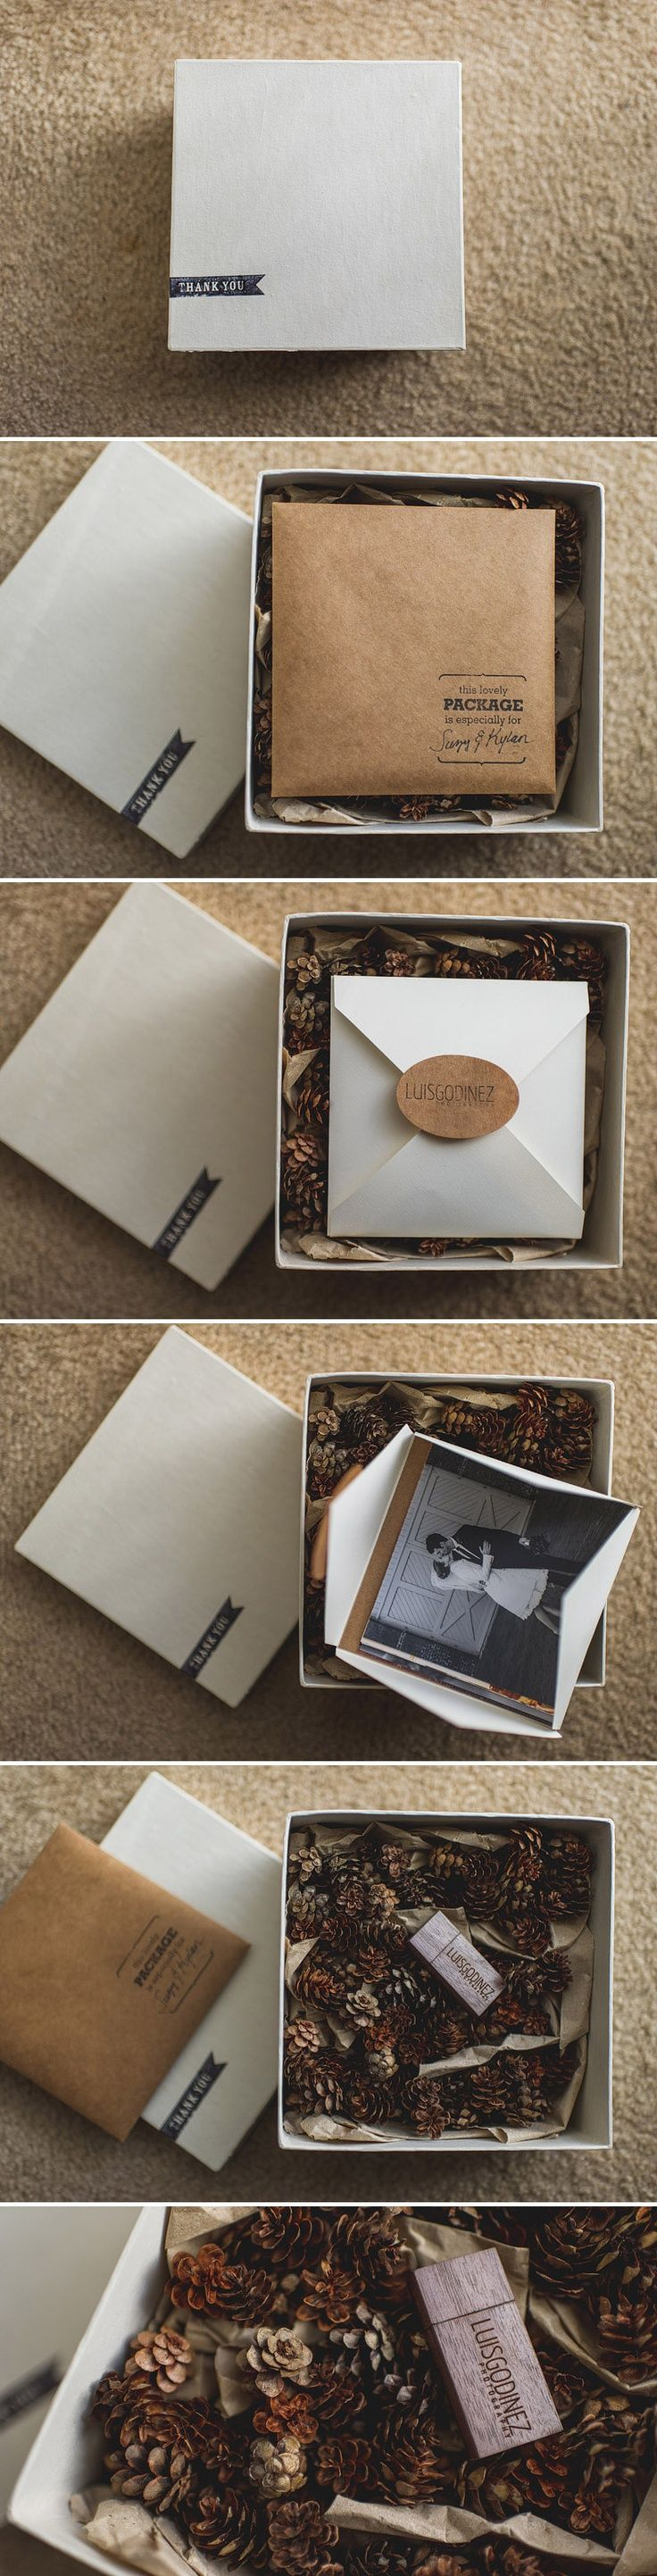 213fd14f68faf70cd02b99e5ec57f2fb Pretty Little Packaging :: Presentation Ideas for Photographers :: Laura Winslow Photography